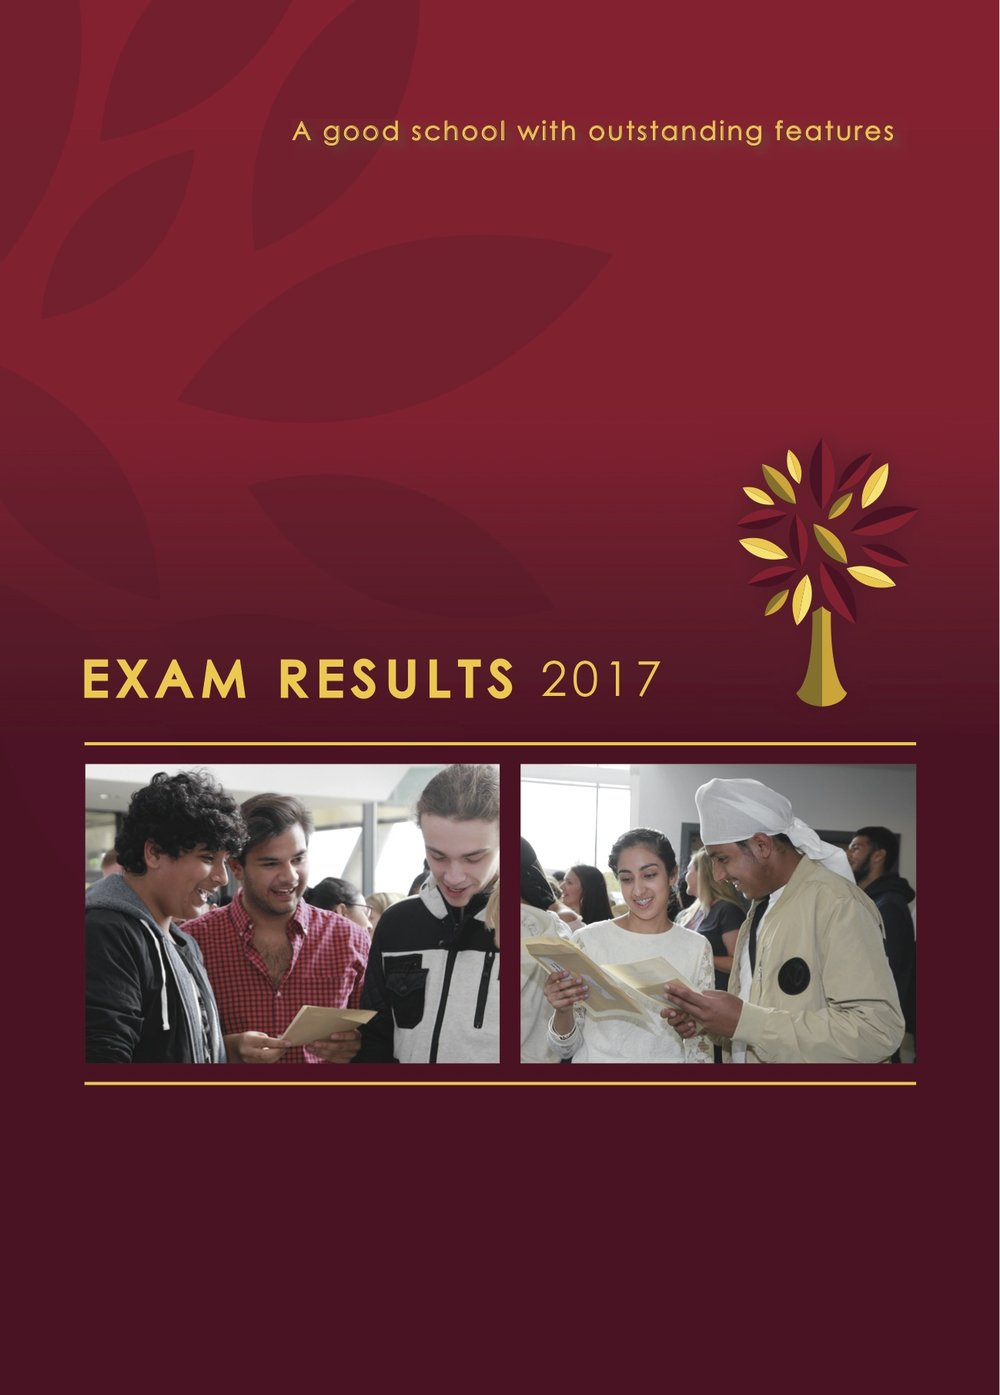 Exam results 2017